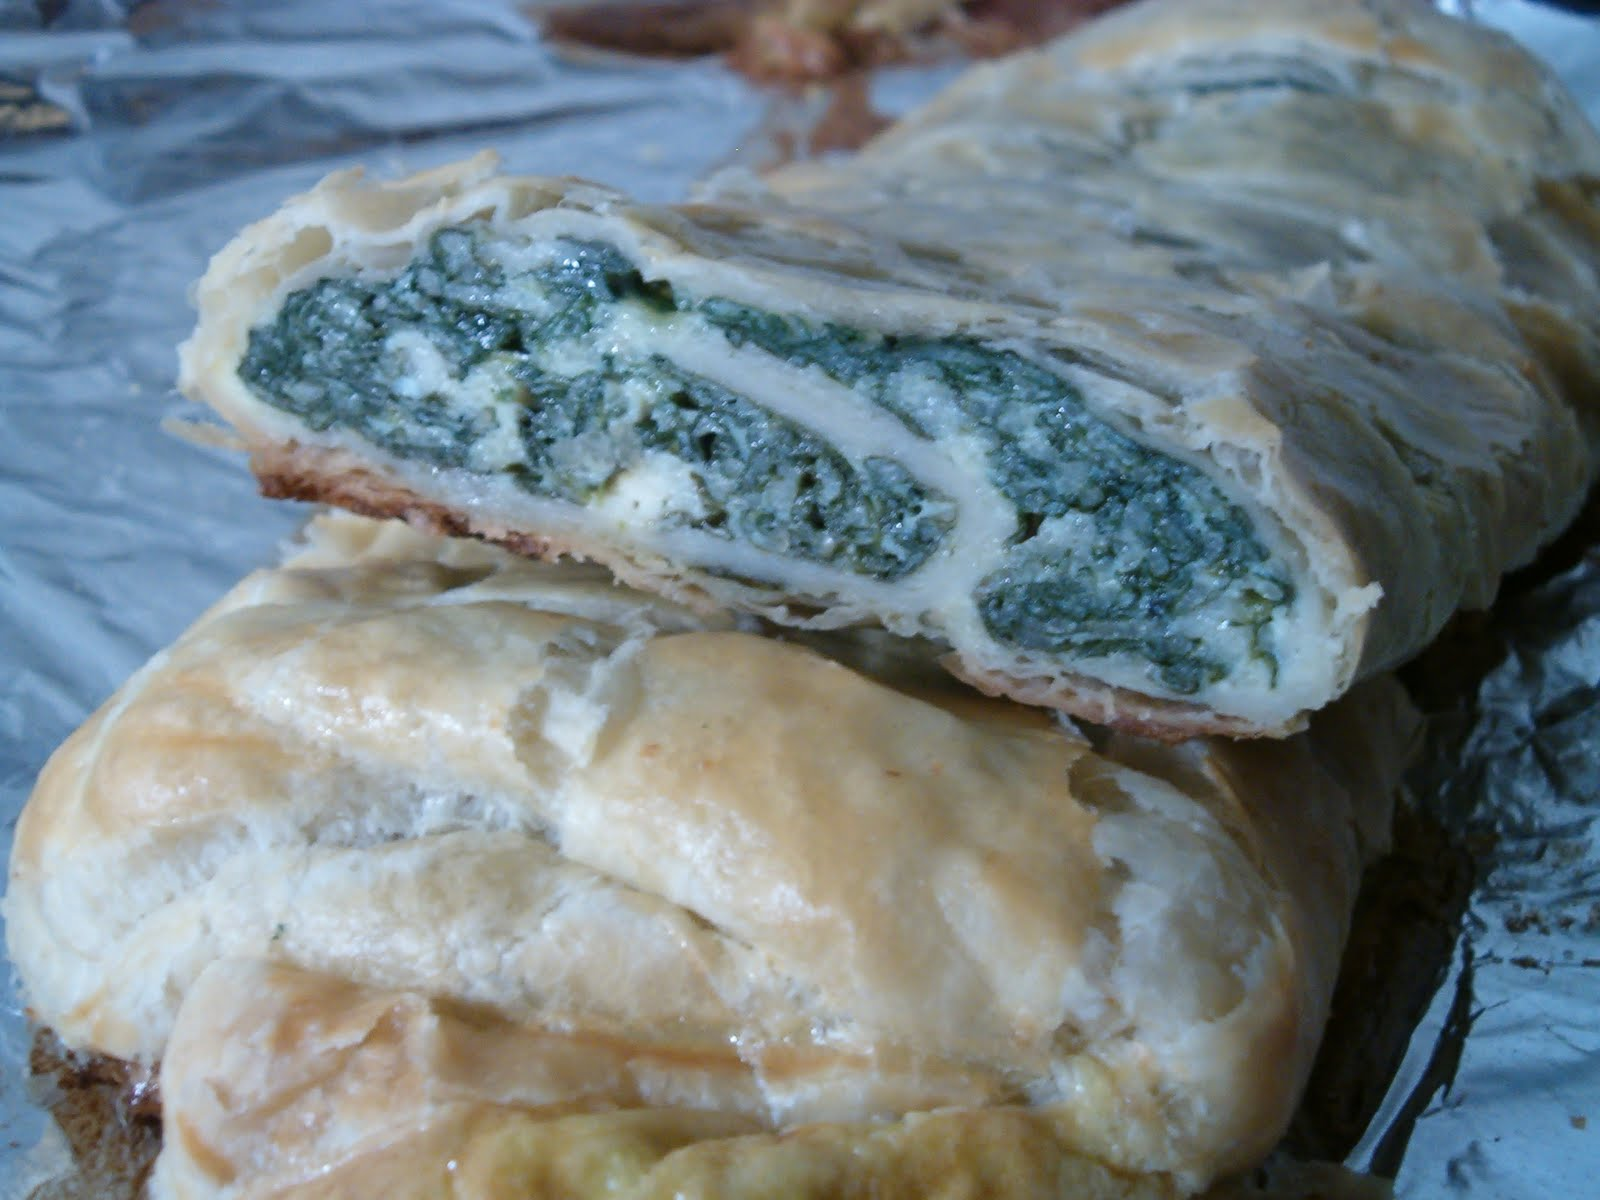 Planet of the Crepes: Spinach strudel